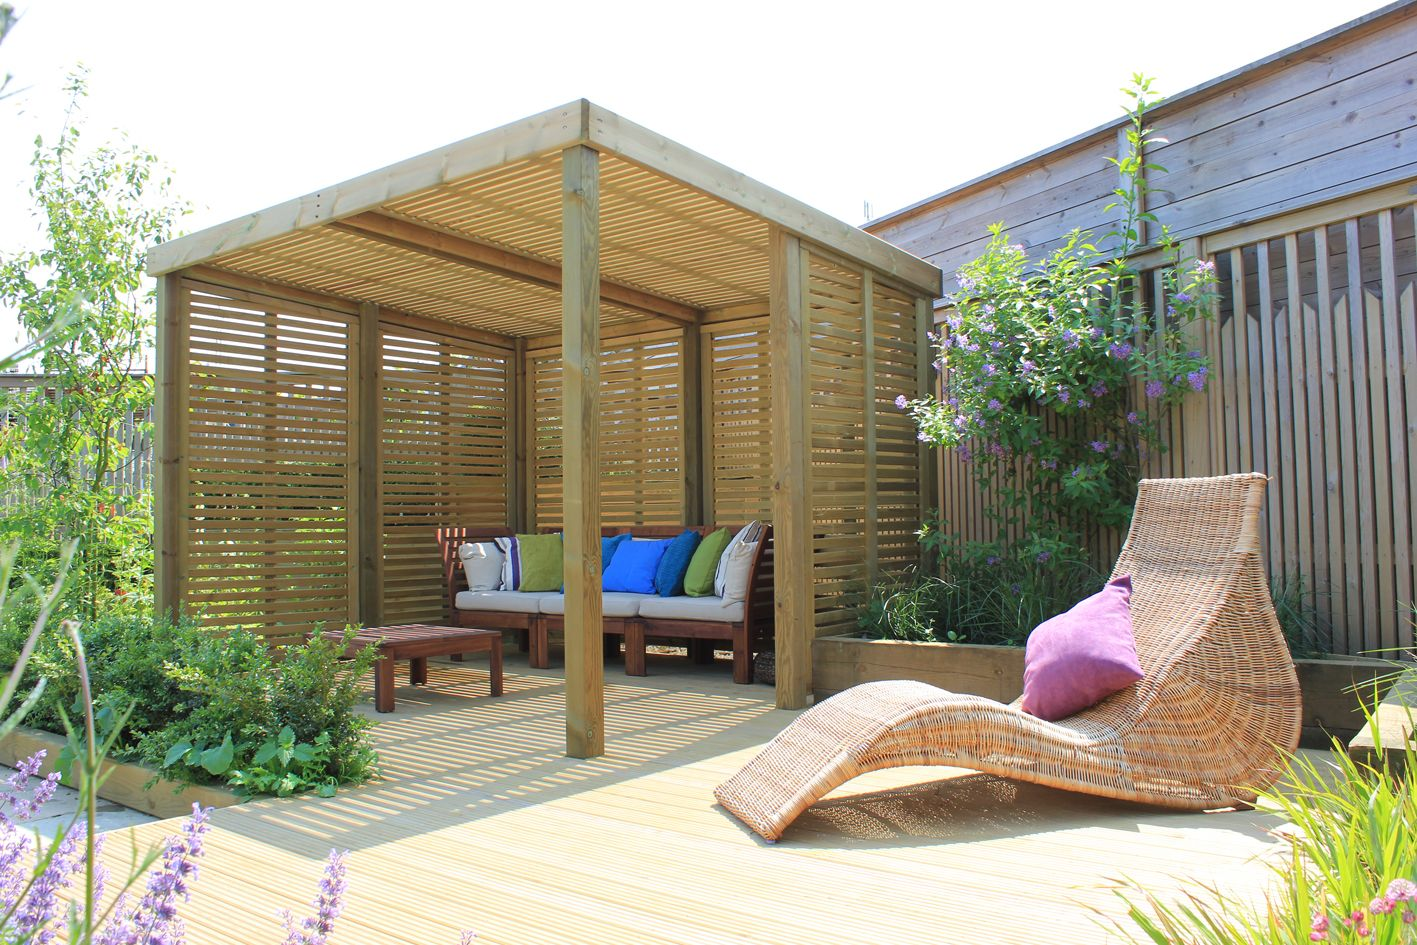 a decked area with the retreat shelter Deck with pergola